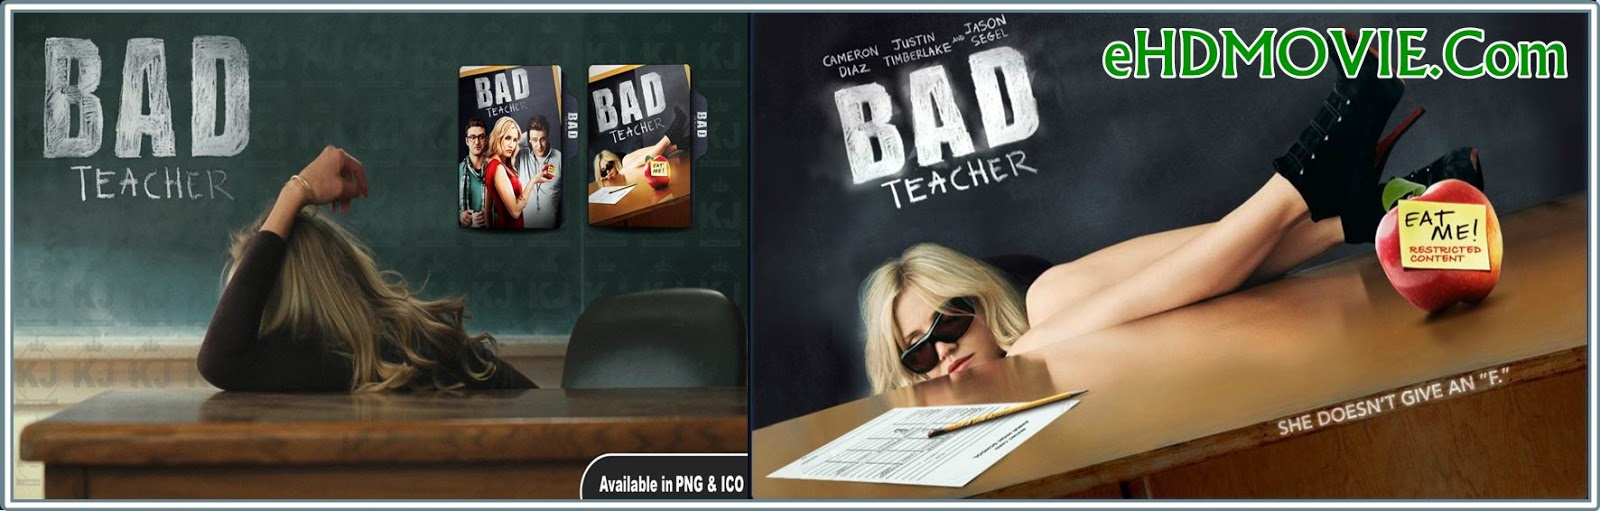 Bad Teacher 2011 Full Movie Dual Audio [Hindi – English] 720p - 480p ORG BRRip 450MB - 800MB ESubs Free Download